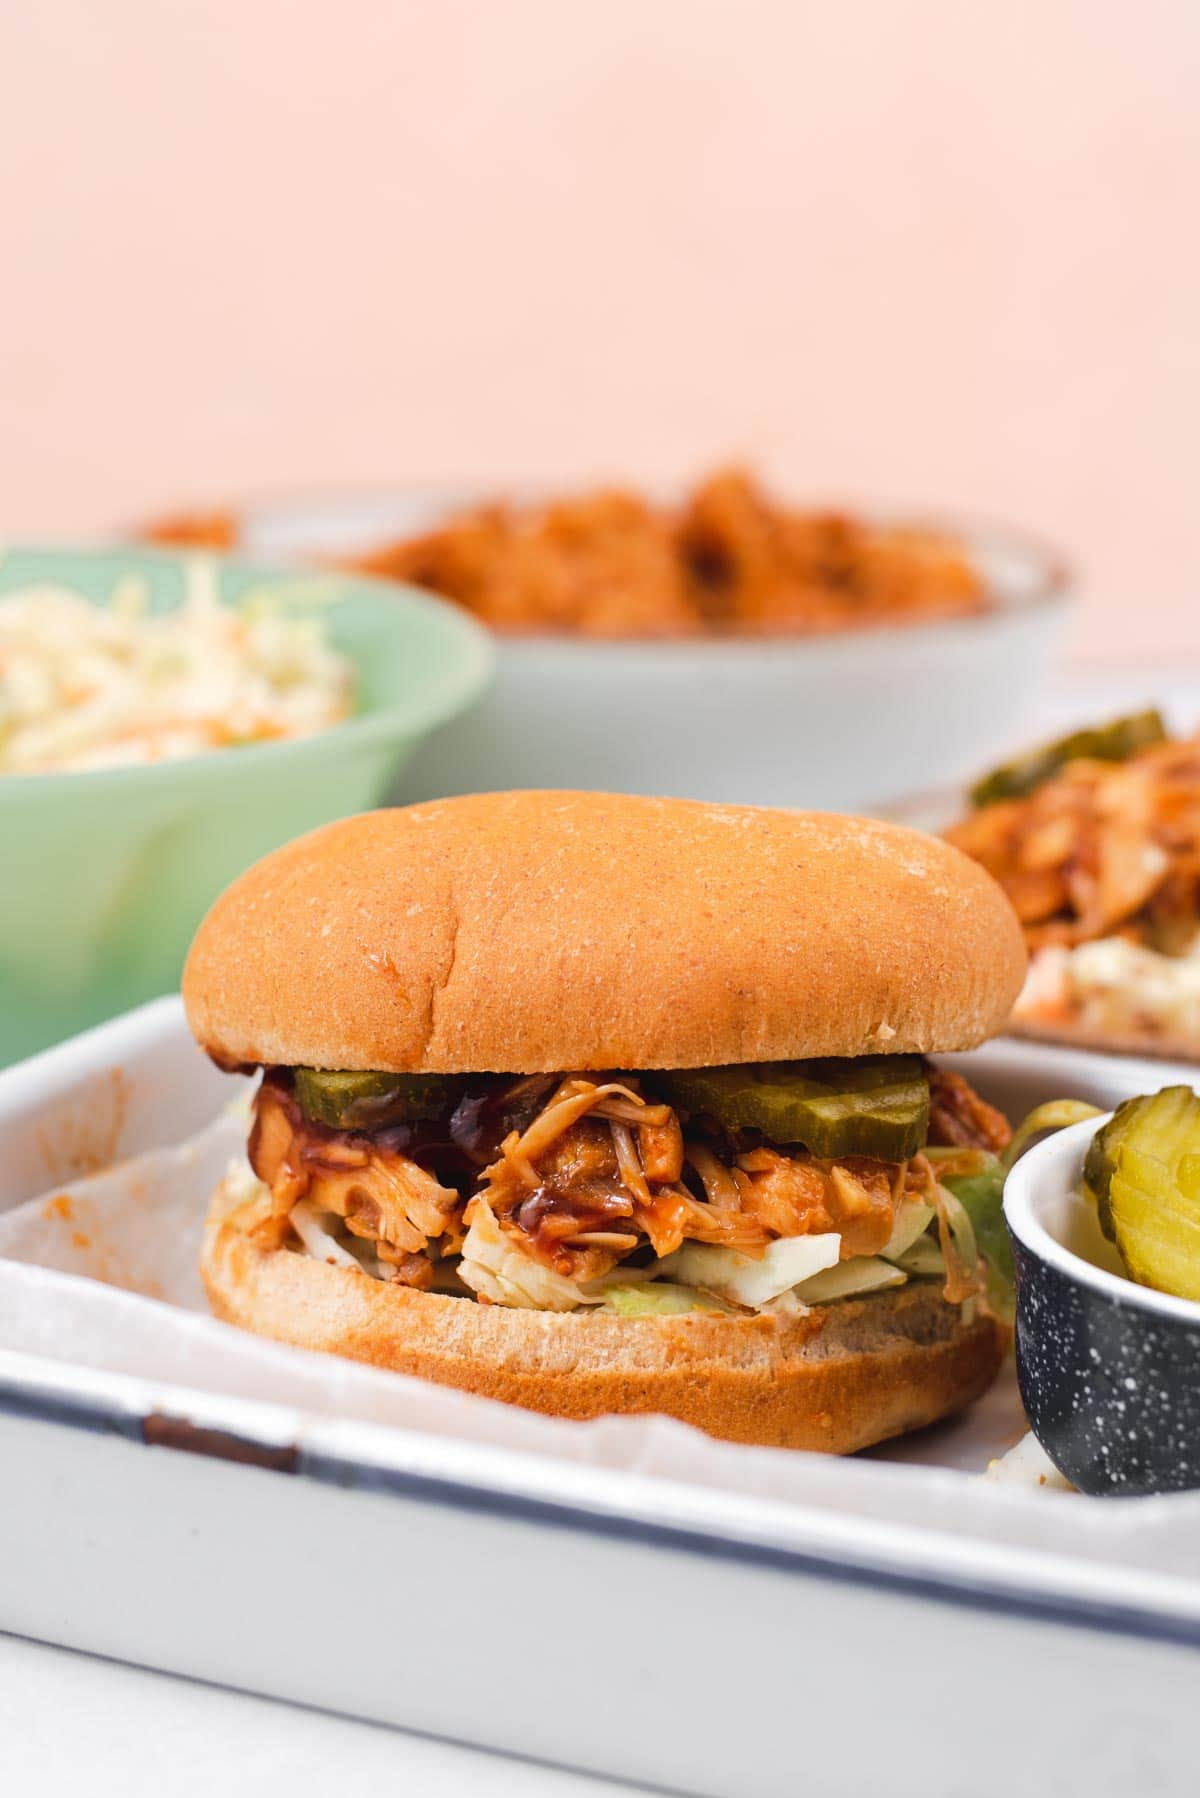 Side view of jackfruit sandwich on white tray with green and white bowl in the background